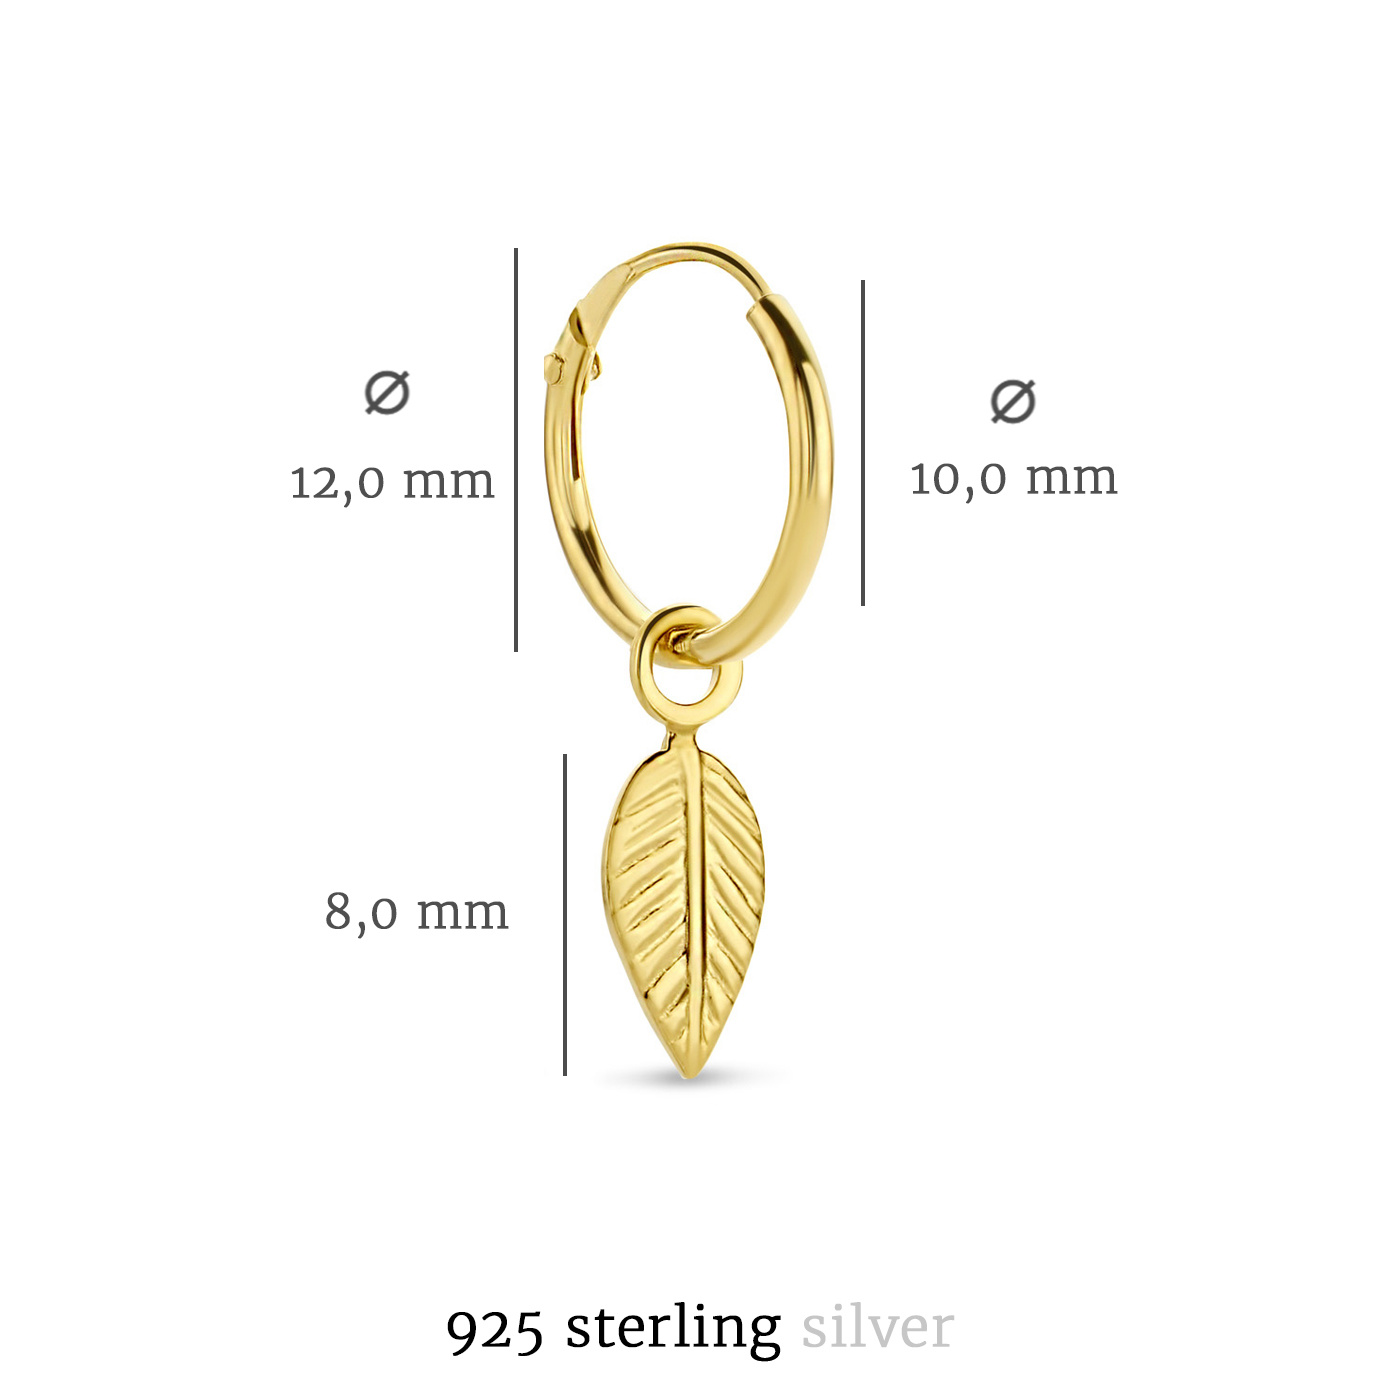 Selected Jewels Julie Lucie 925 sterling silver gold colored hoop earrings with feathers